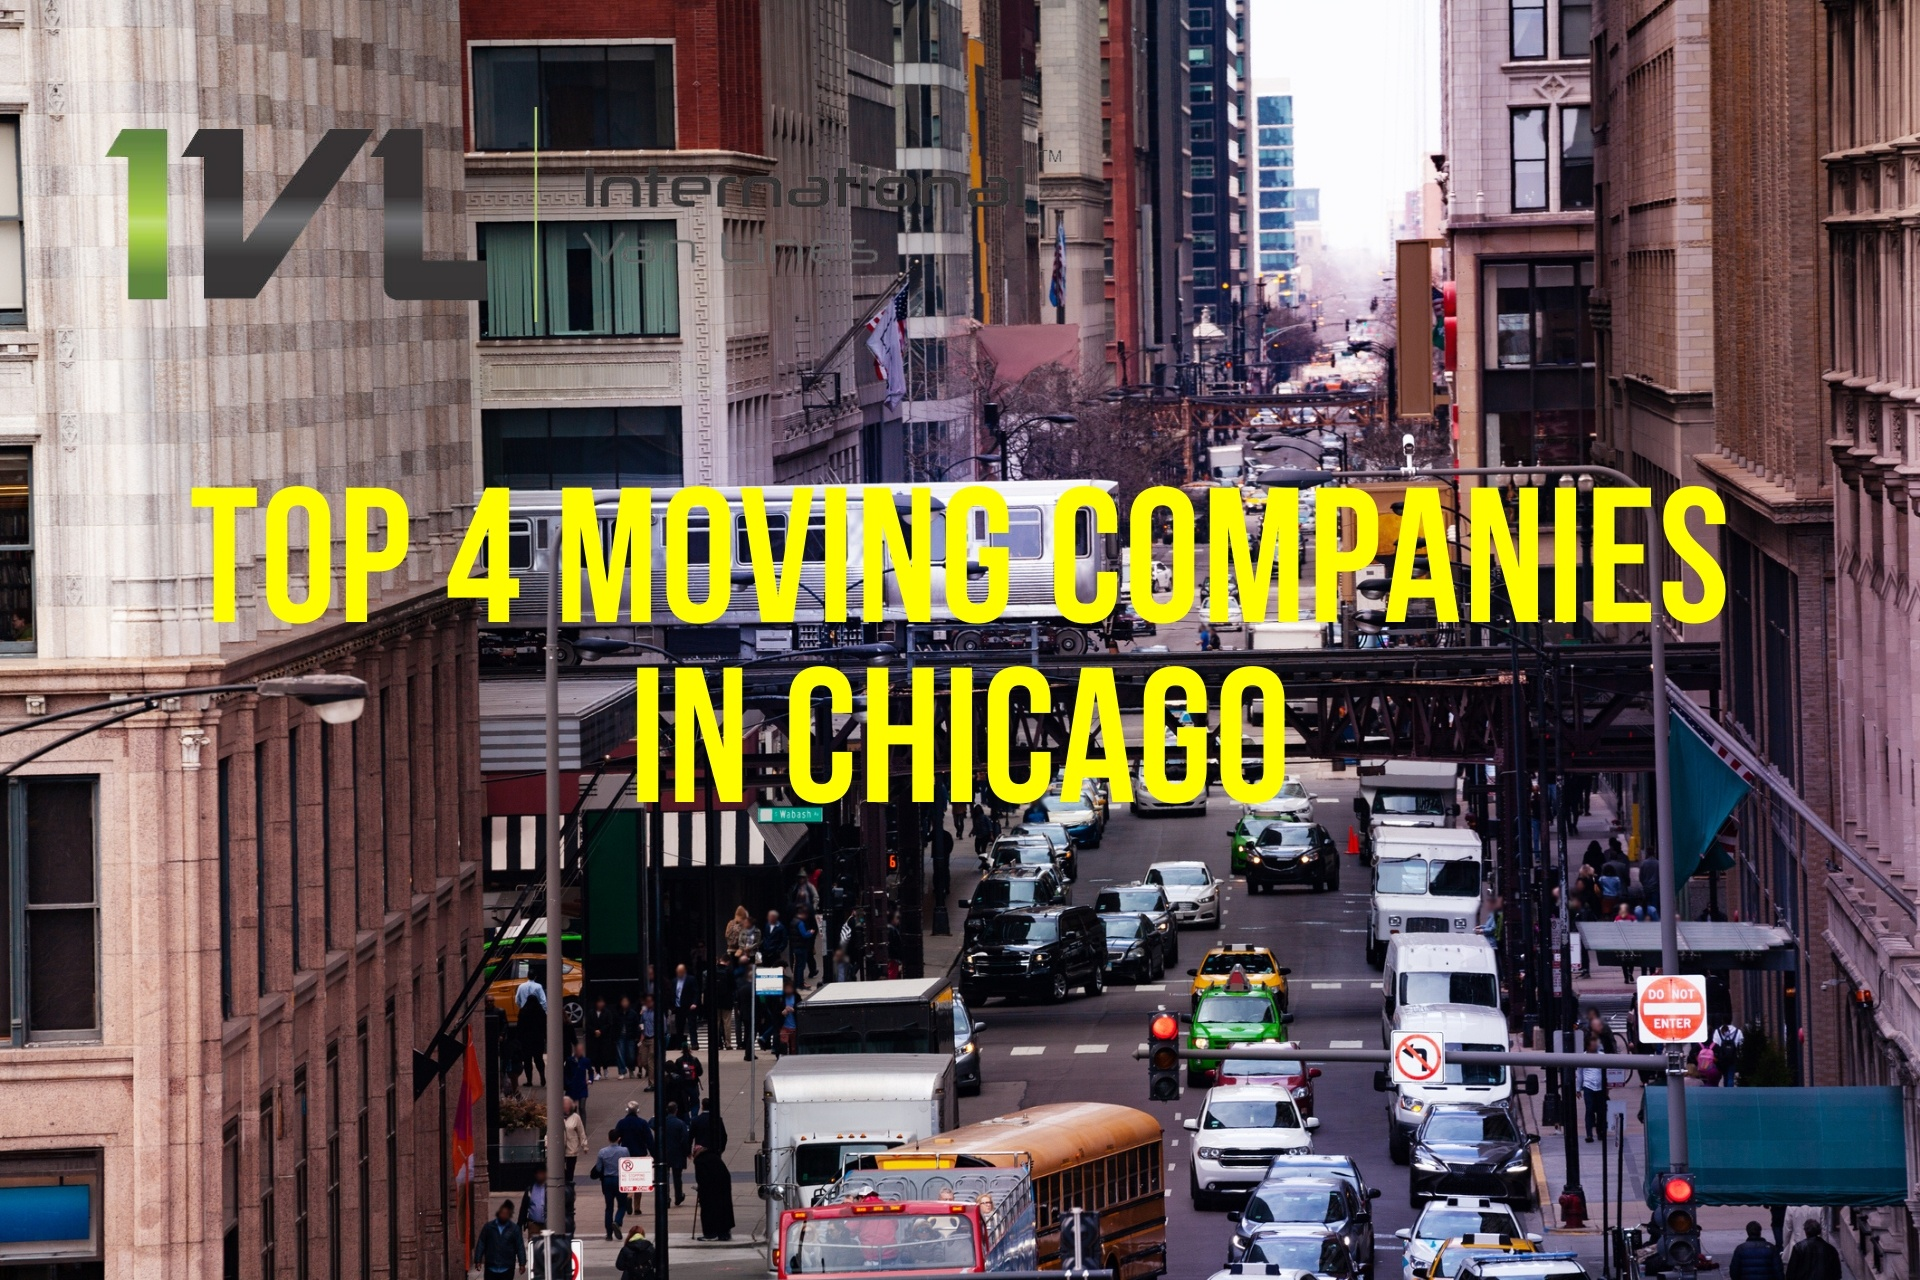 Moving companies in Chicago